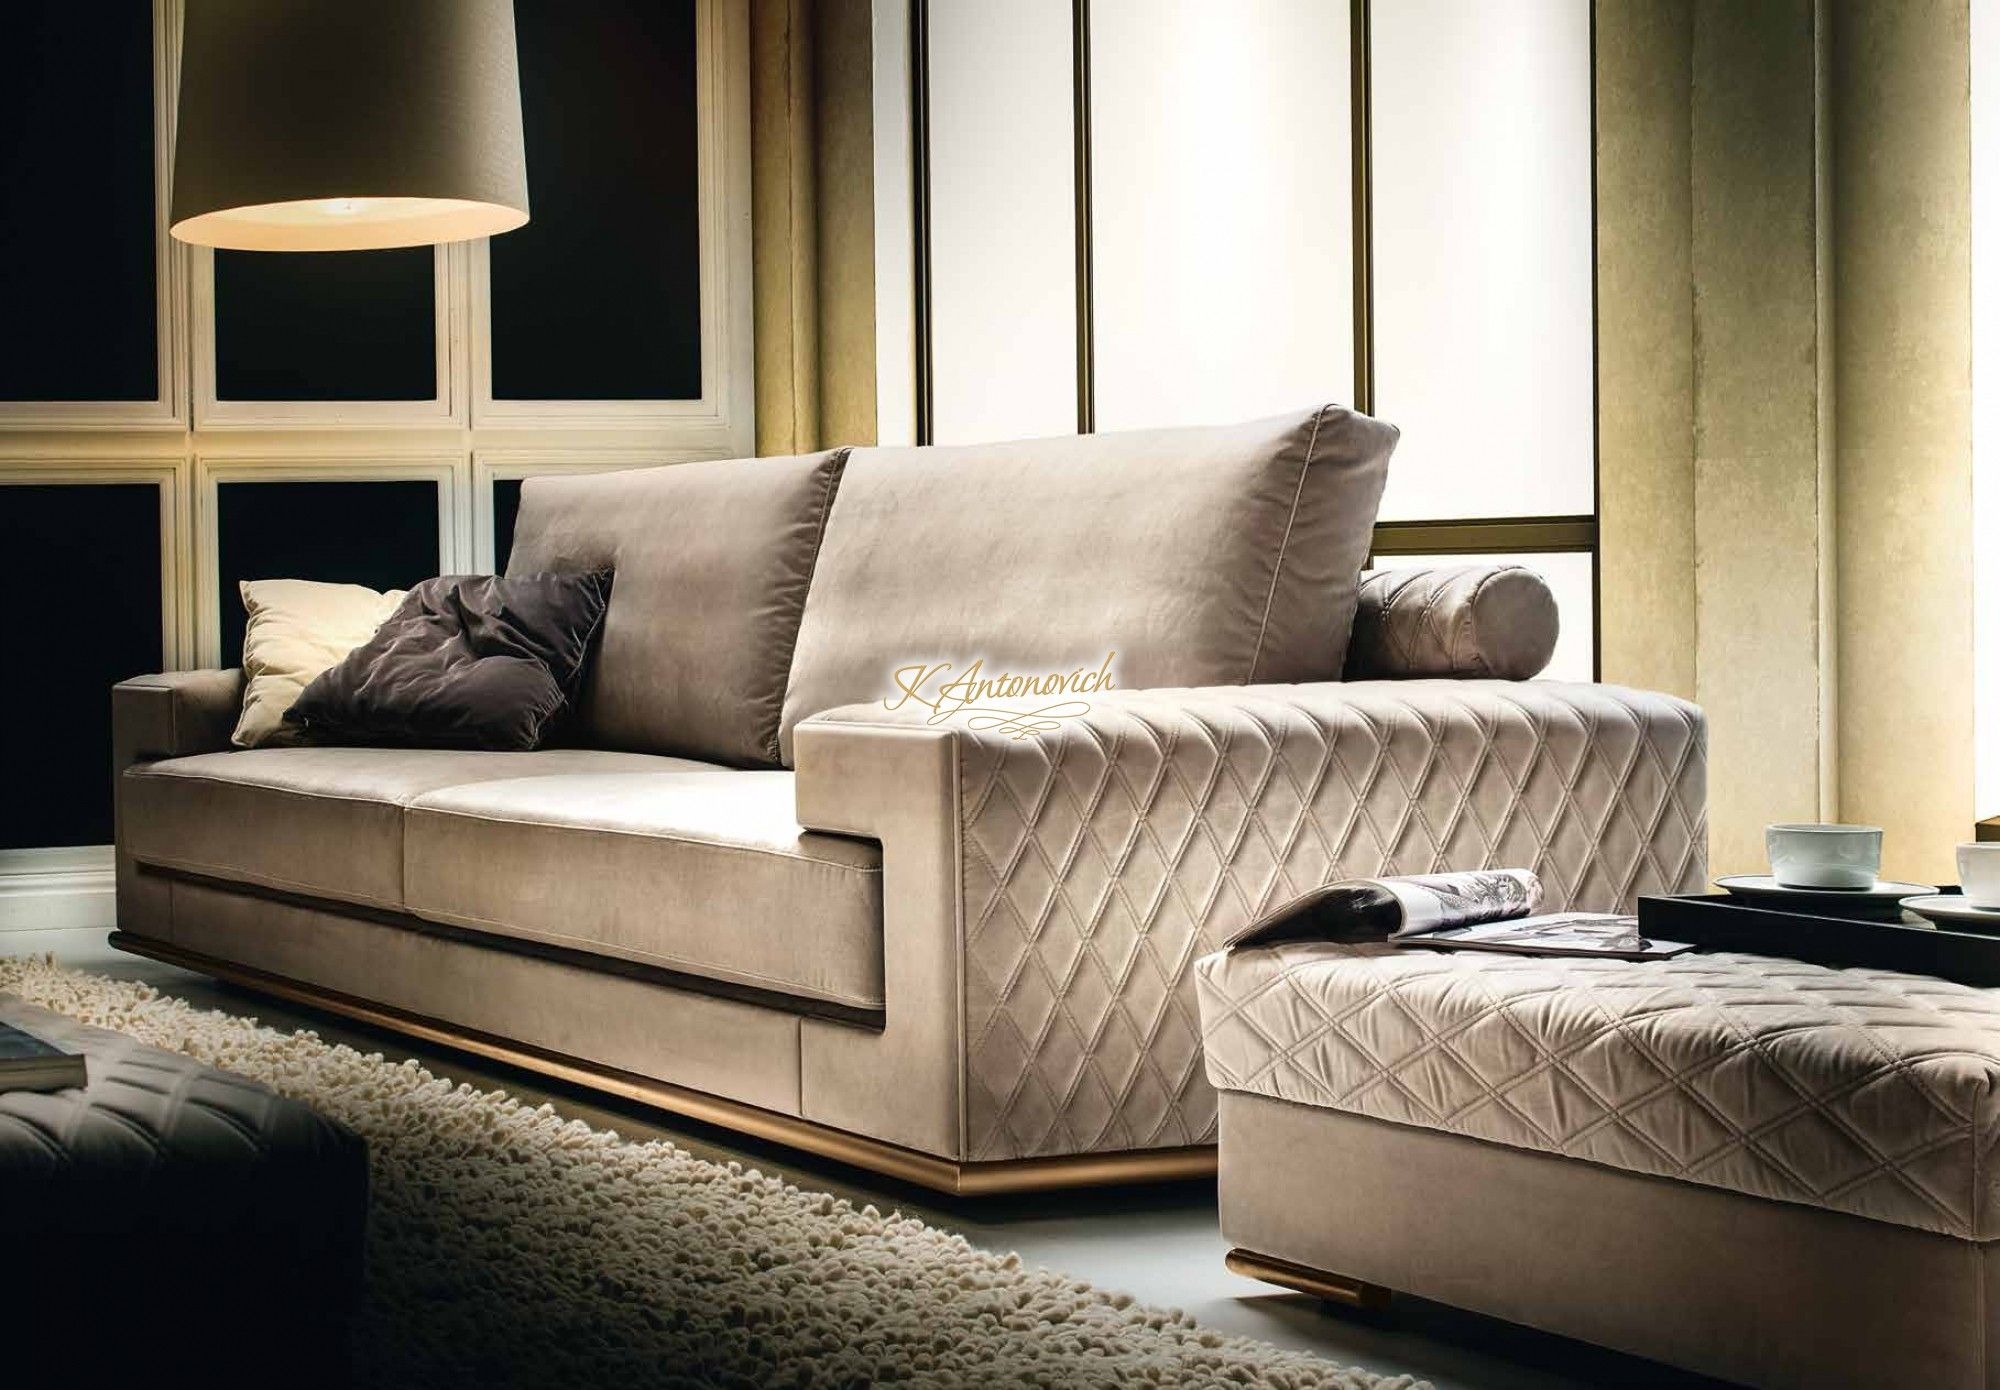 Modern Italian Living Room Furniture Favorite Concept Design Of All Time Superiority And Luxury Furniture Sofa Italian Sofa Designs Living Room Sofa Design